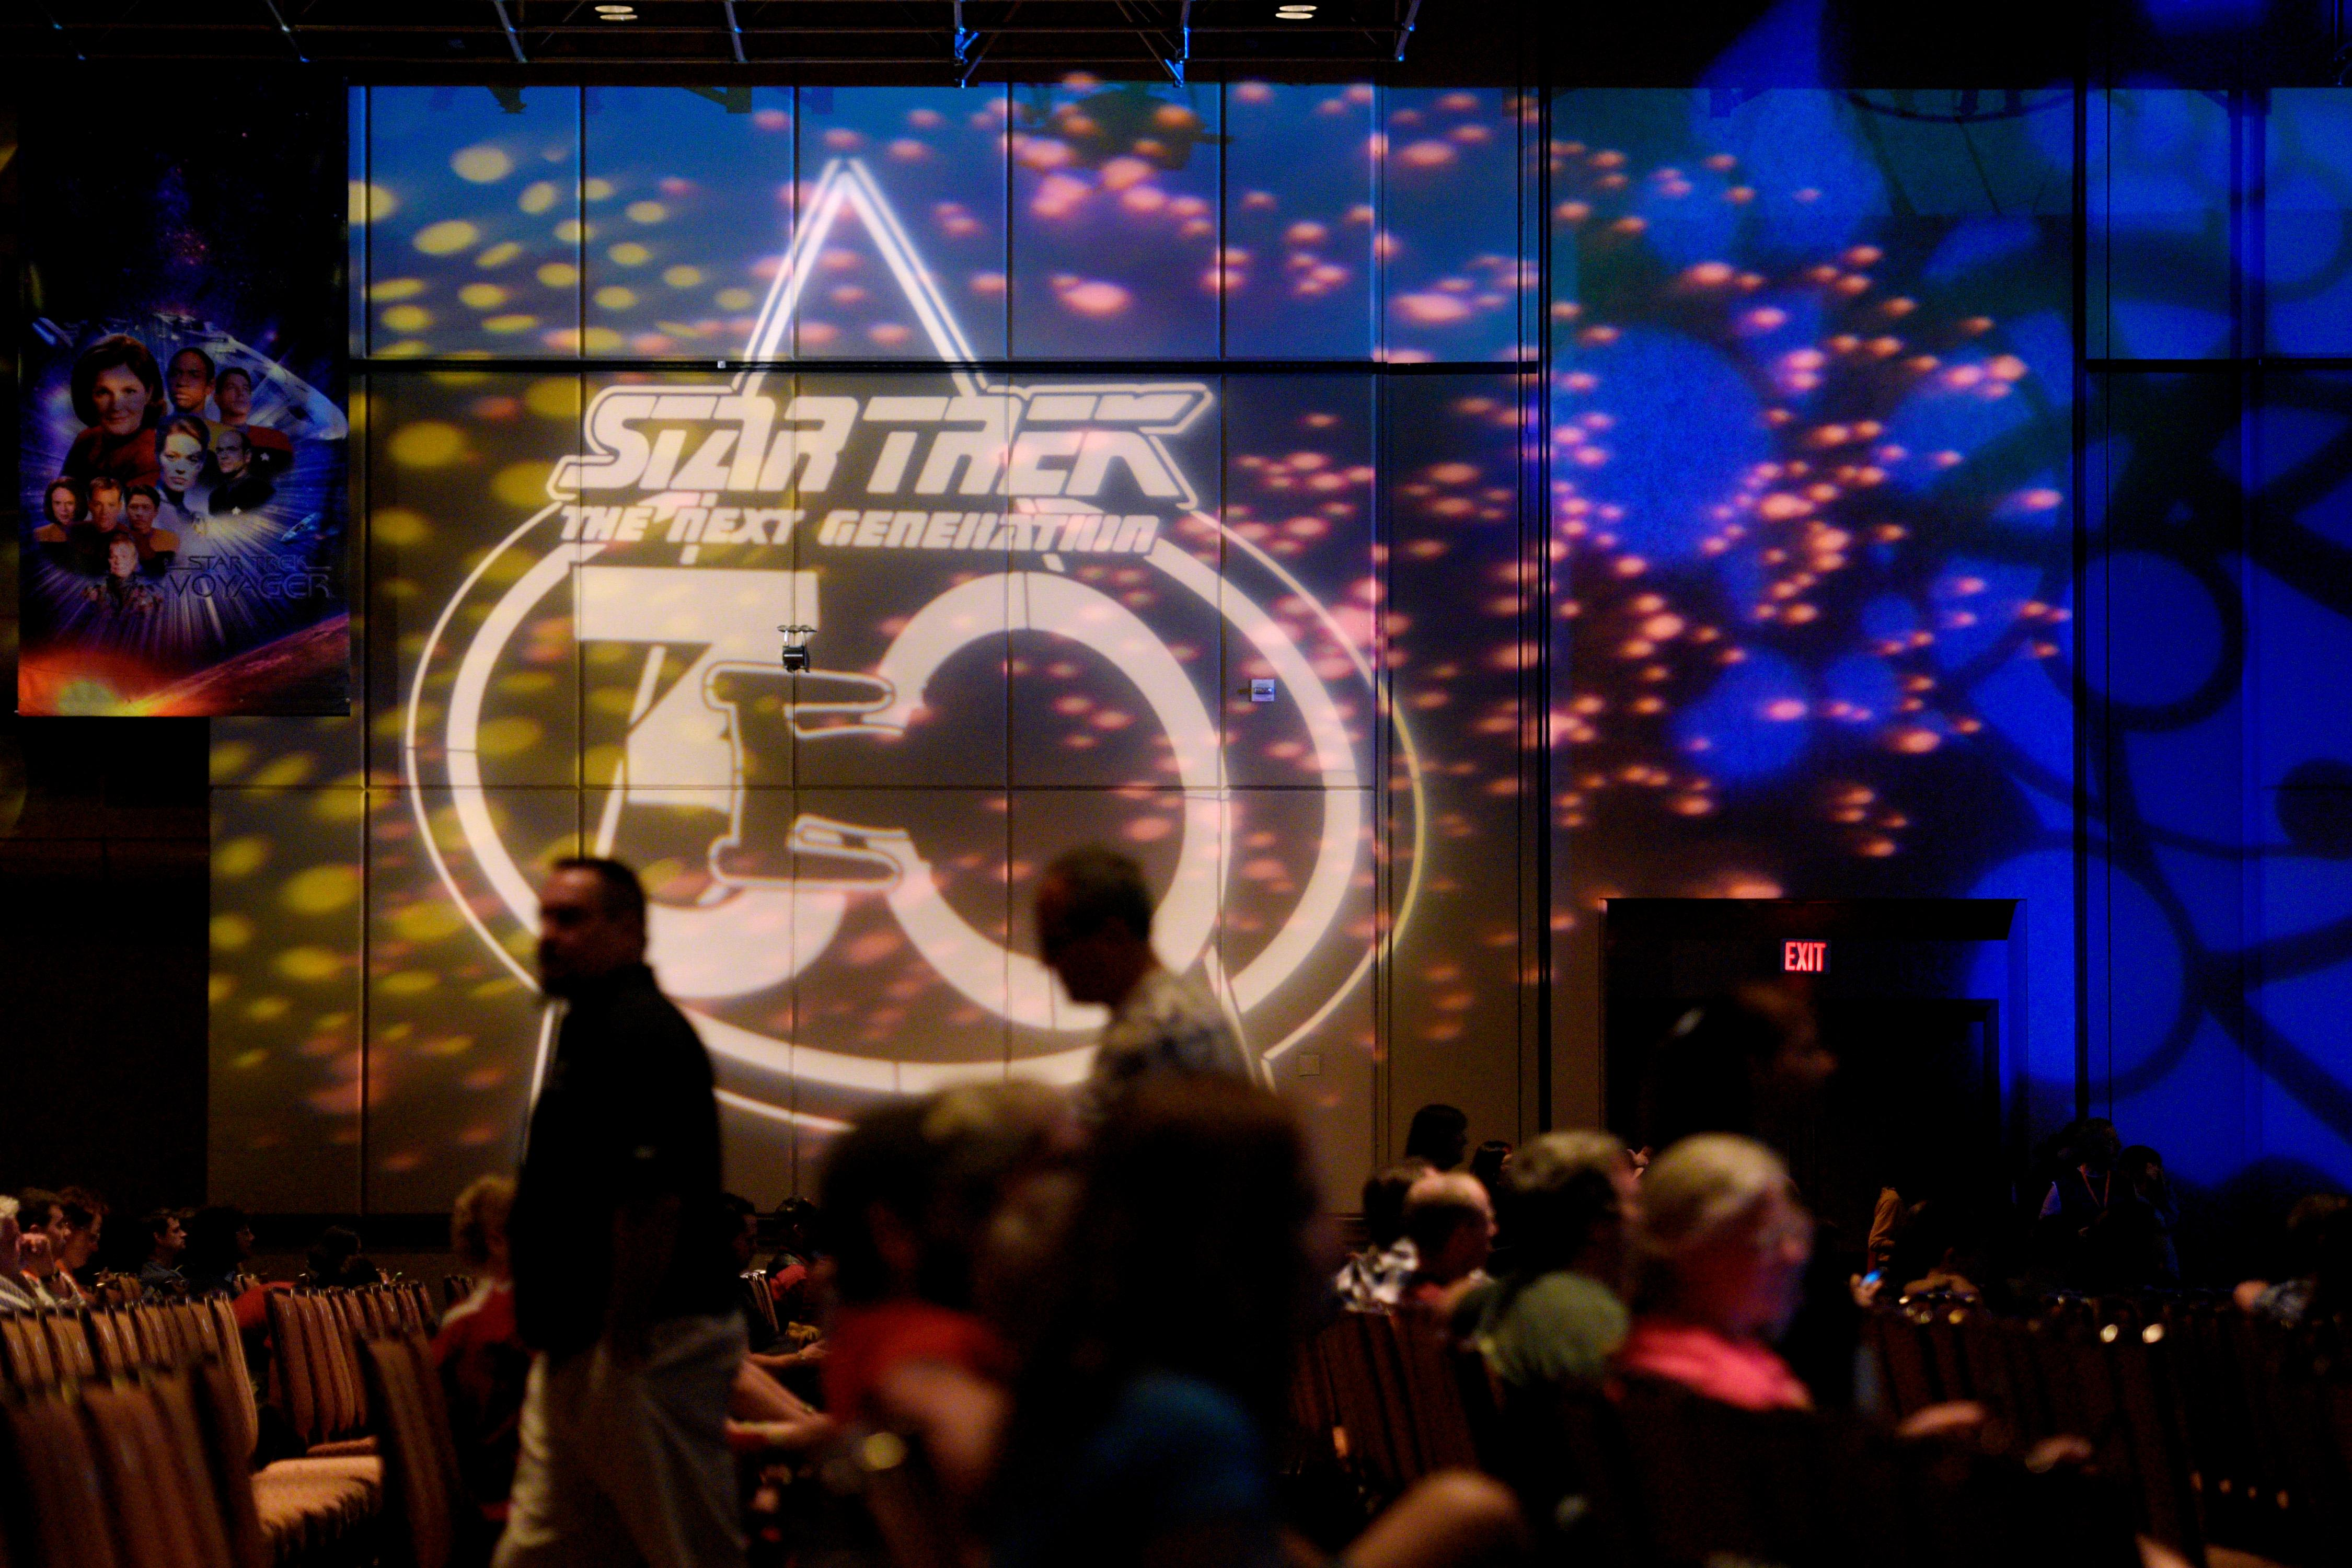 Projections mark the 30th anniversary of Star Trek: The Next Generation during the 16th annual Las Vegas Star Trek Convention Saturday, August 5, 2017, at the Rio.  CREDIT: Sam Morris/Las Vegas News Bureau